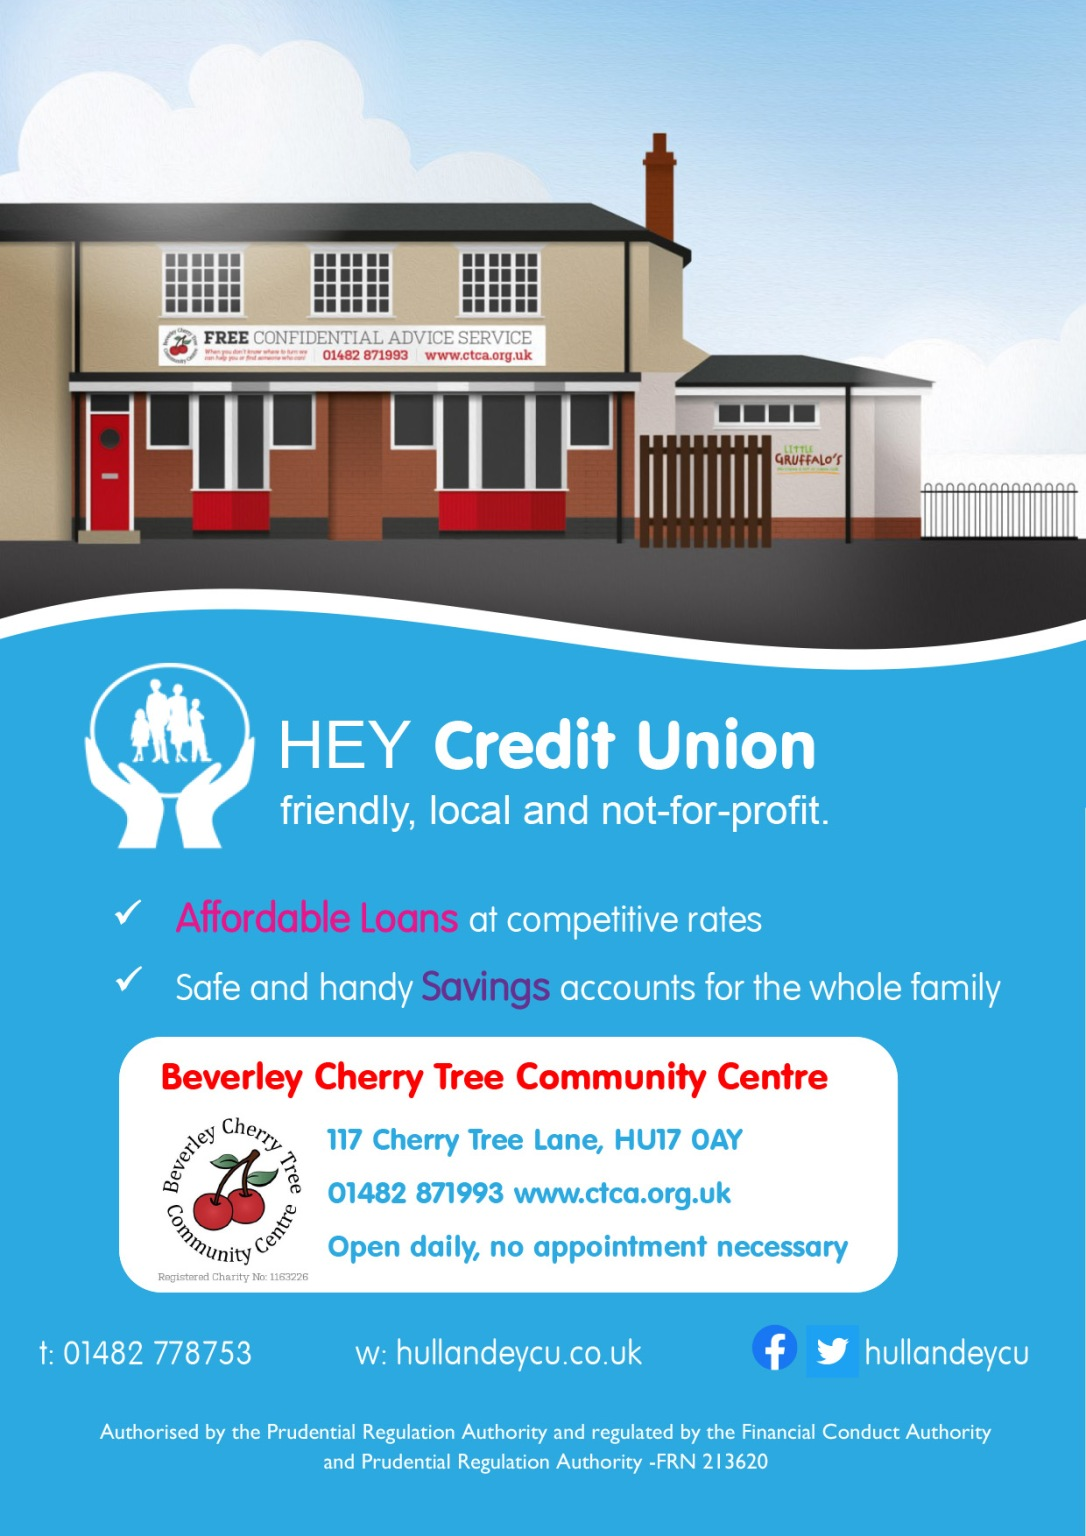 HEY_CreditUnion